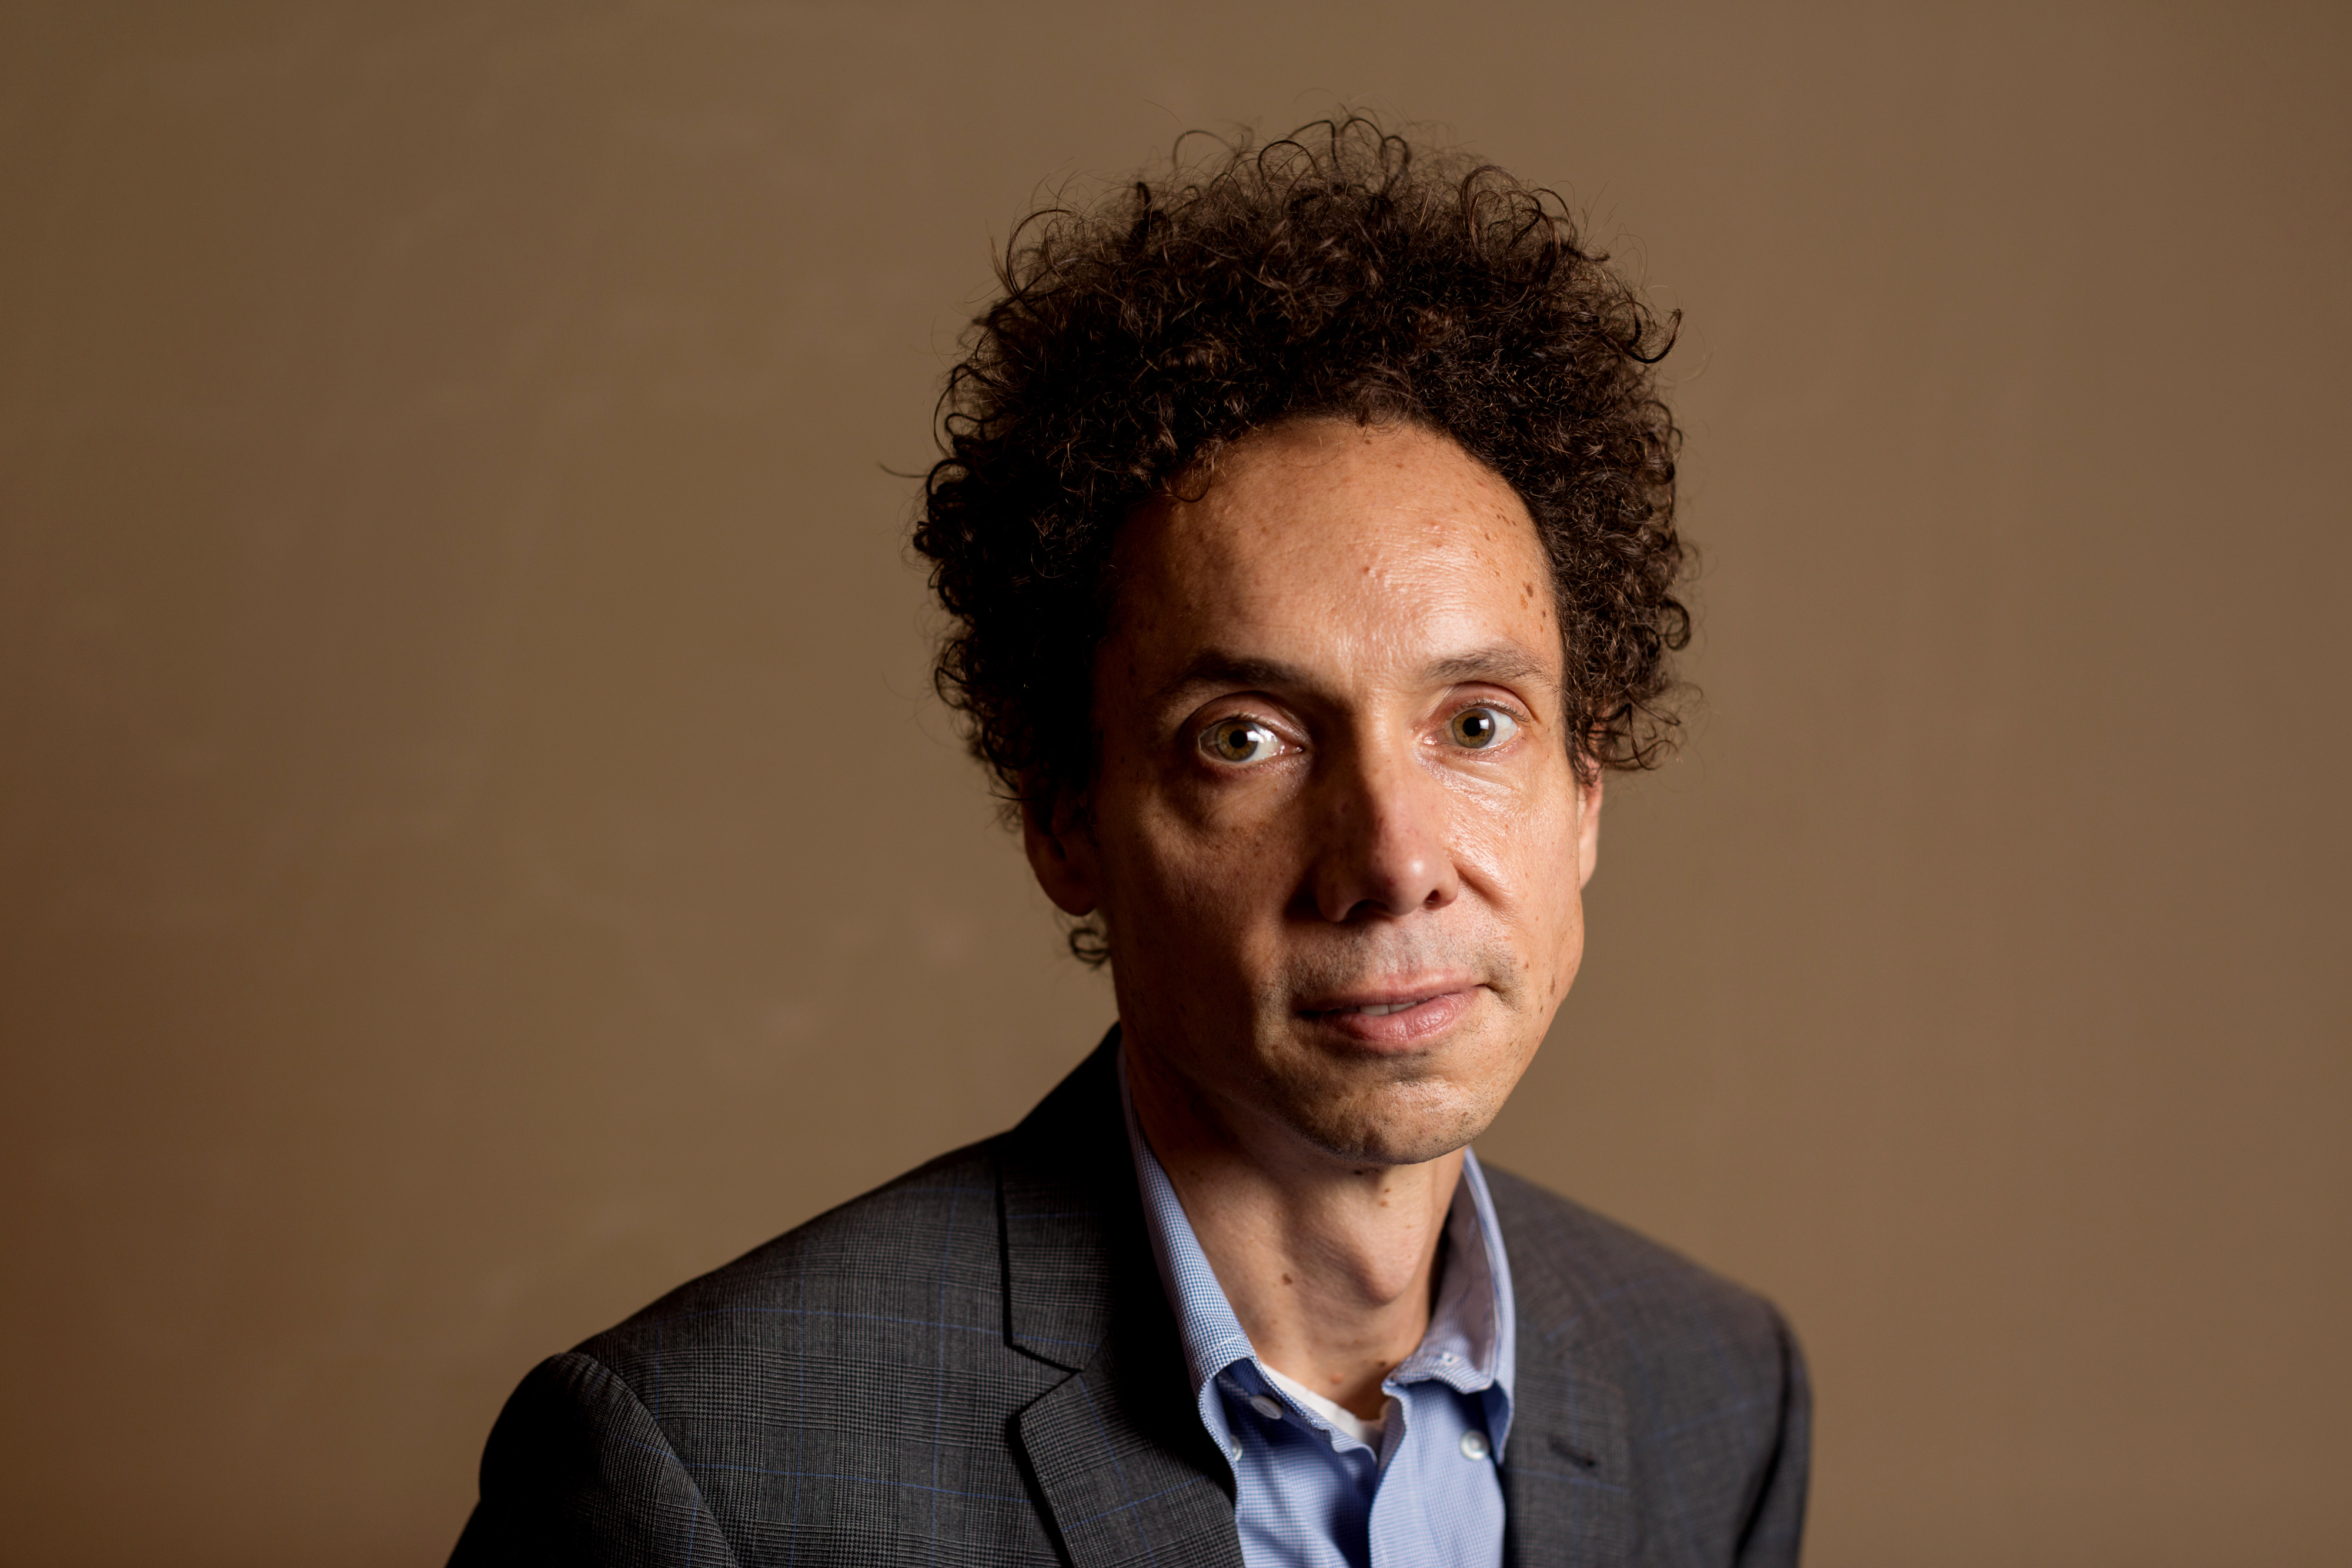 Malcolm Gladwell at the Barclays Asia Forum in Hong Kong on Nov. 6, 2014.